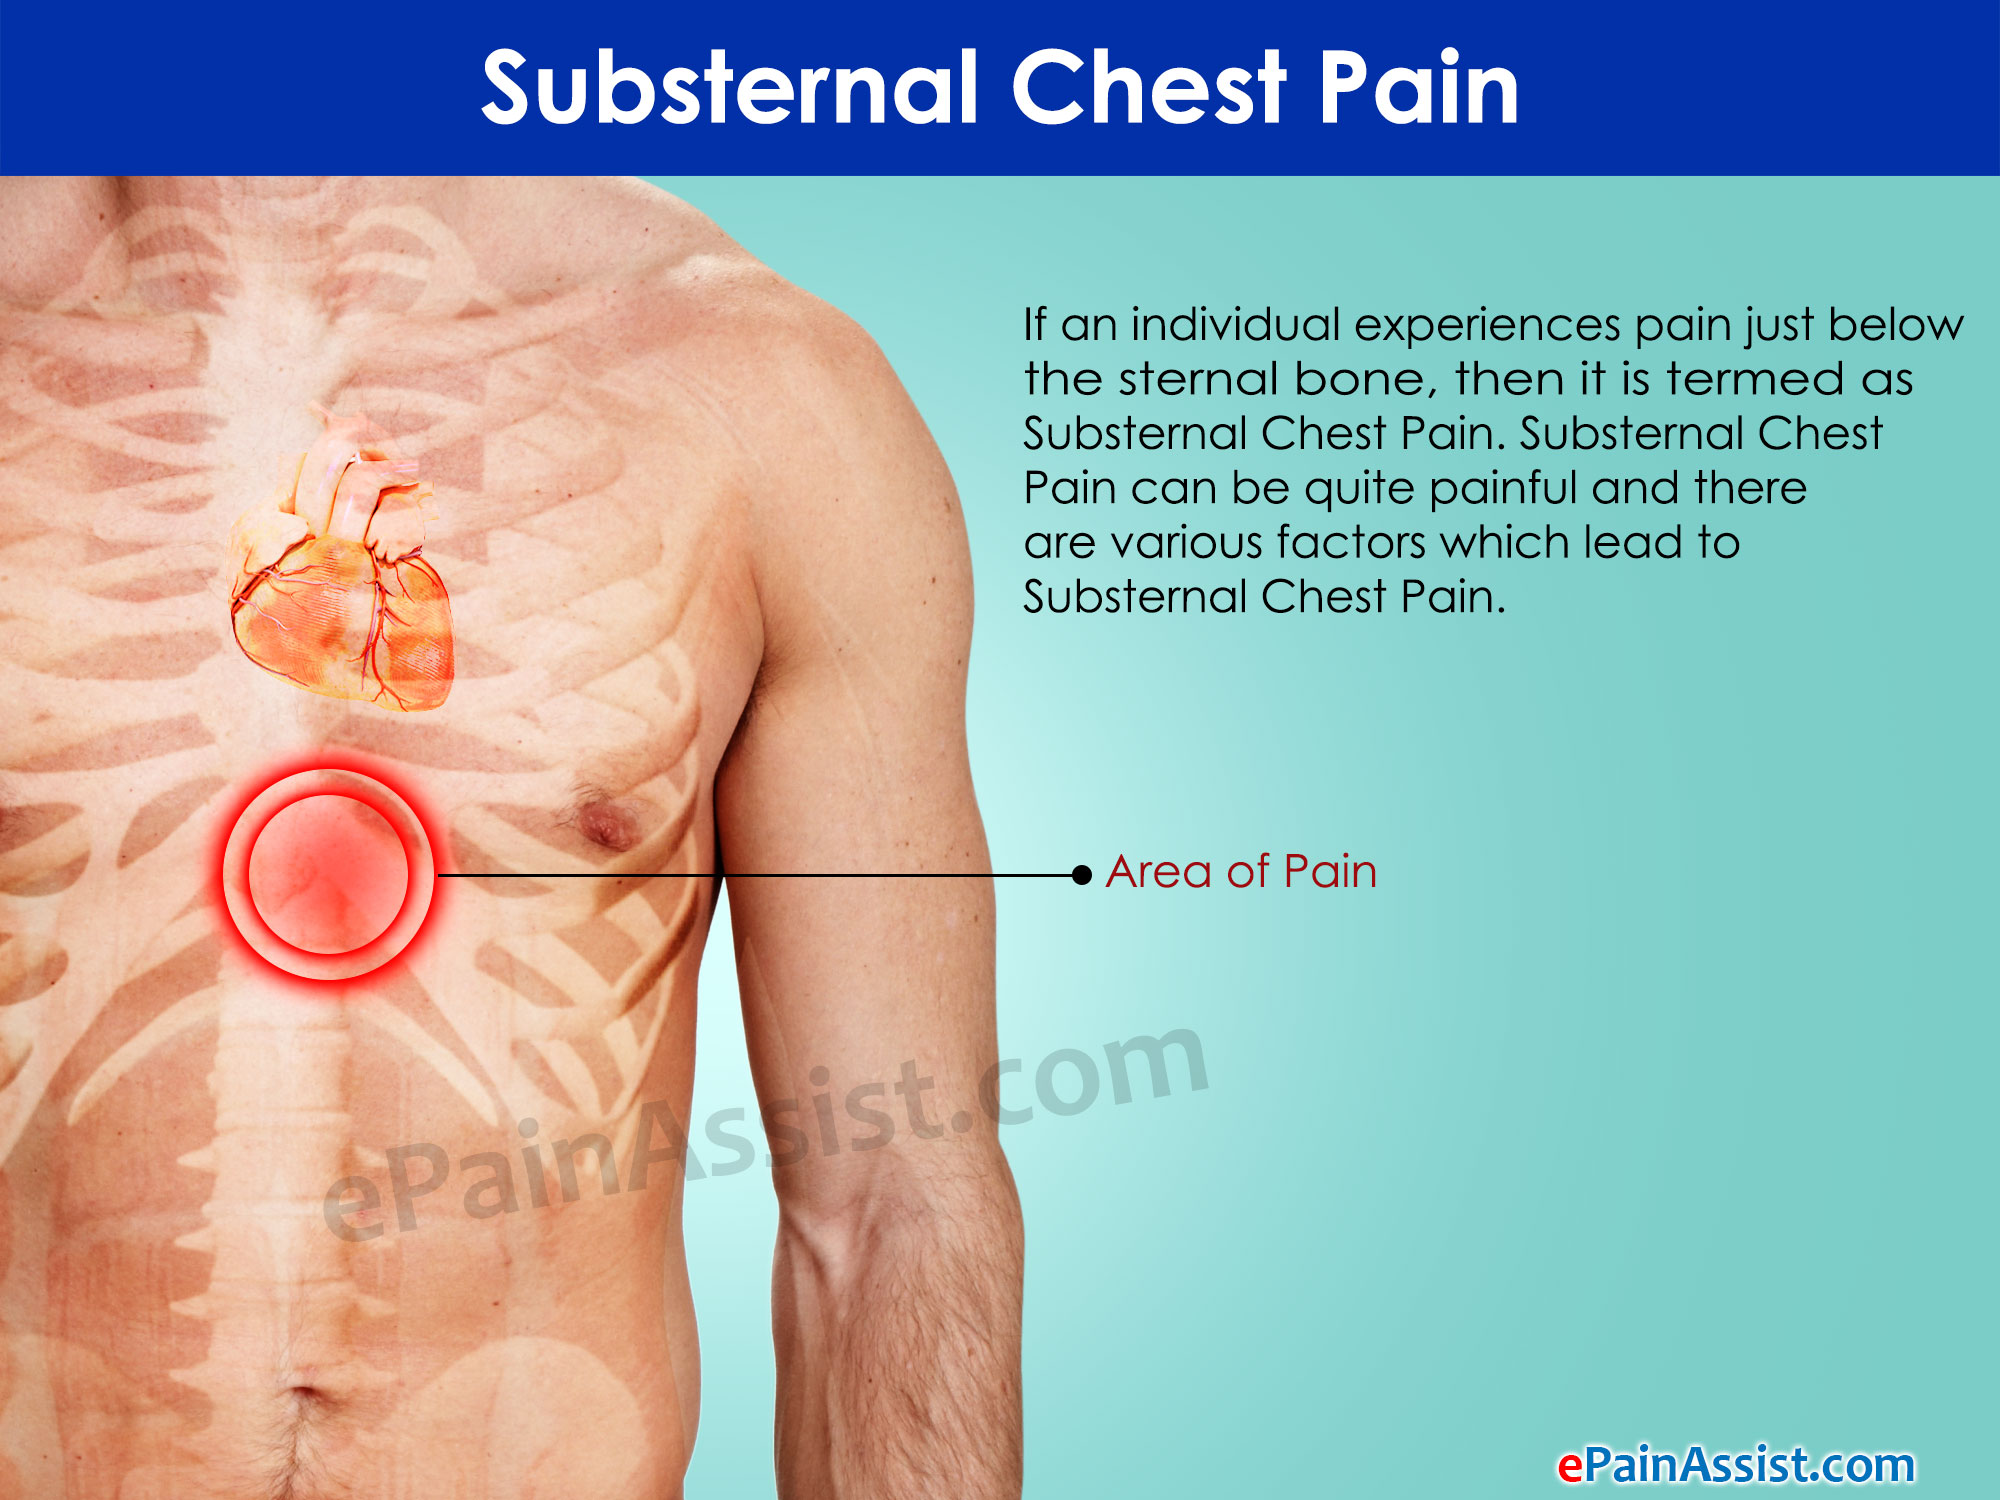 What Are Some Of The Ociated Symptoms Along With Substernal Chest Pain